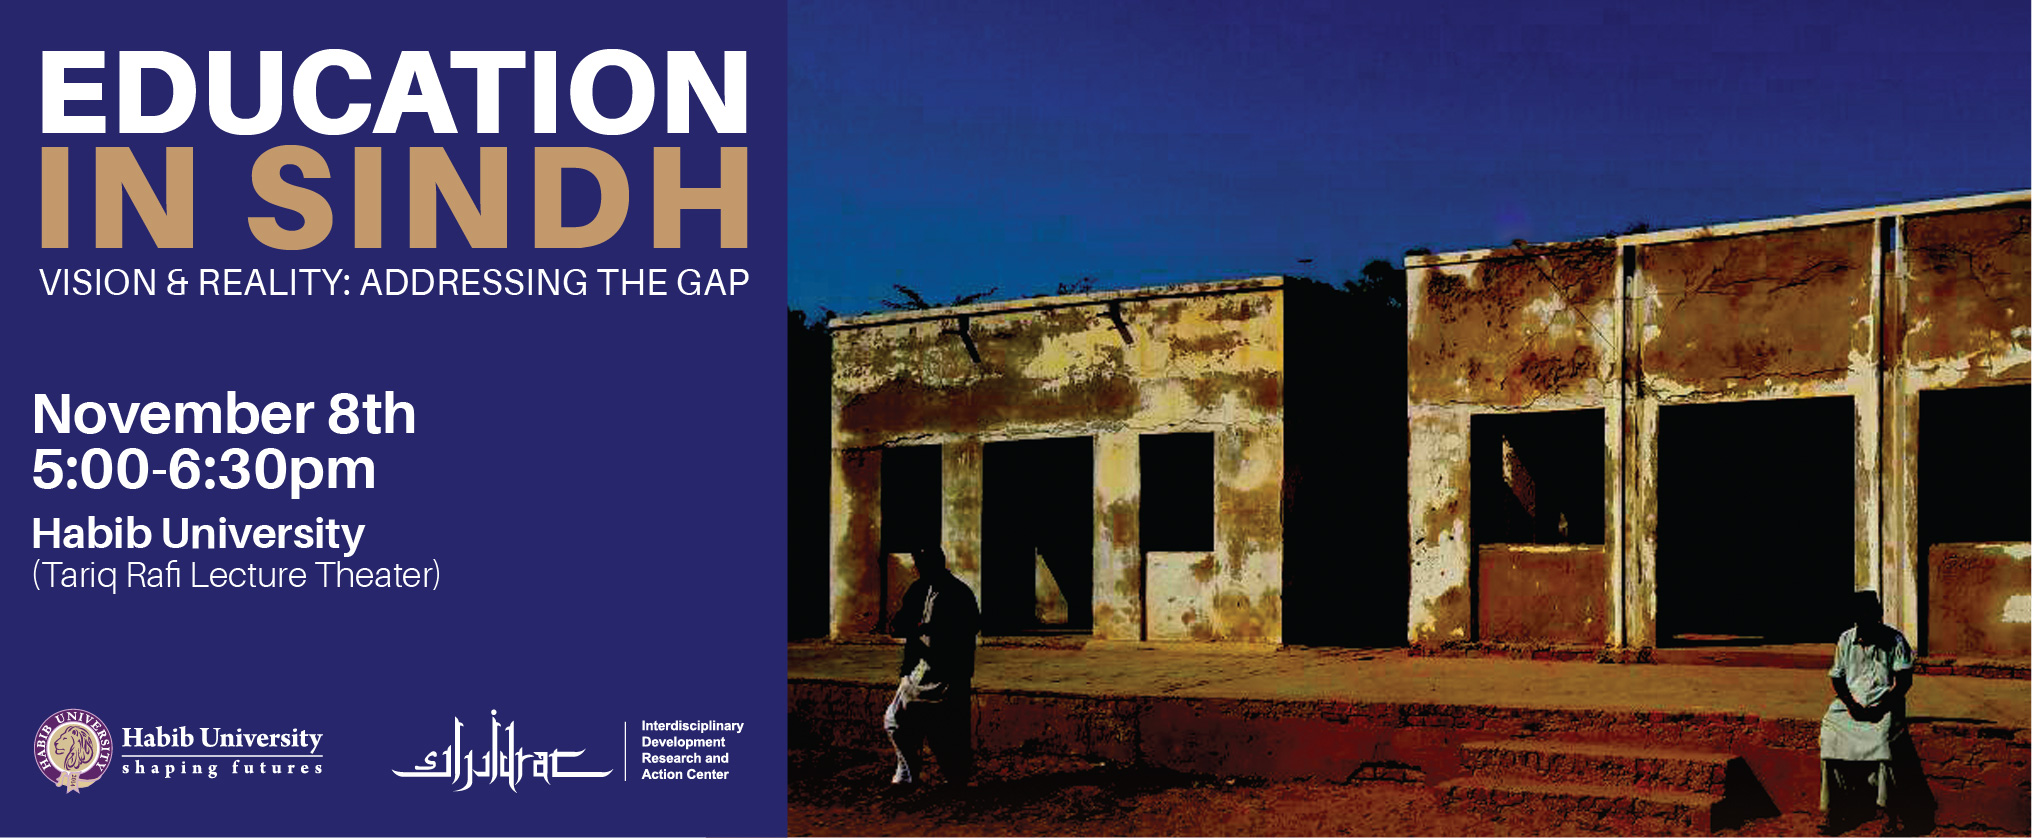 Education in Sindh – Vision & Reality: Addressing the Gap